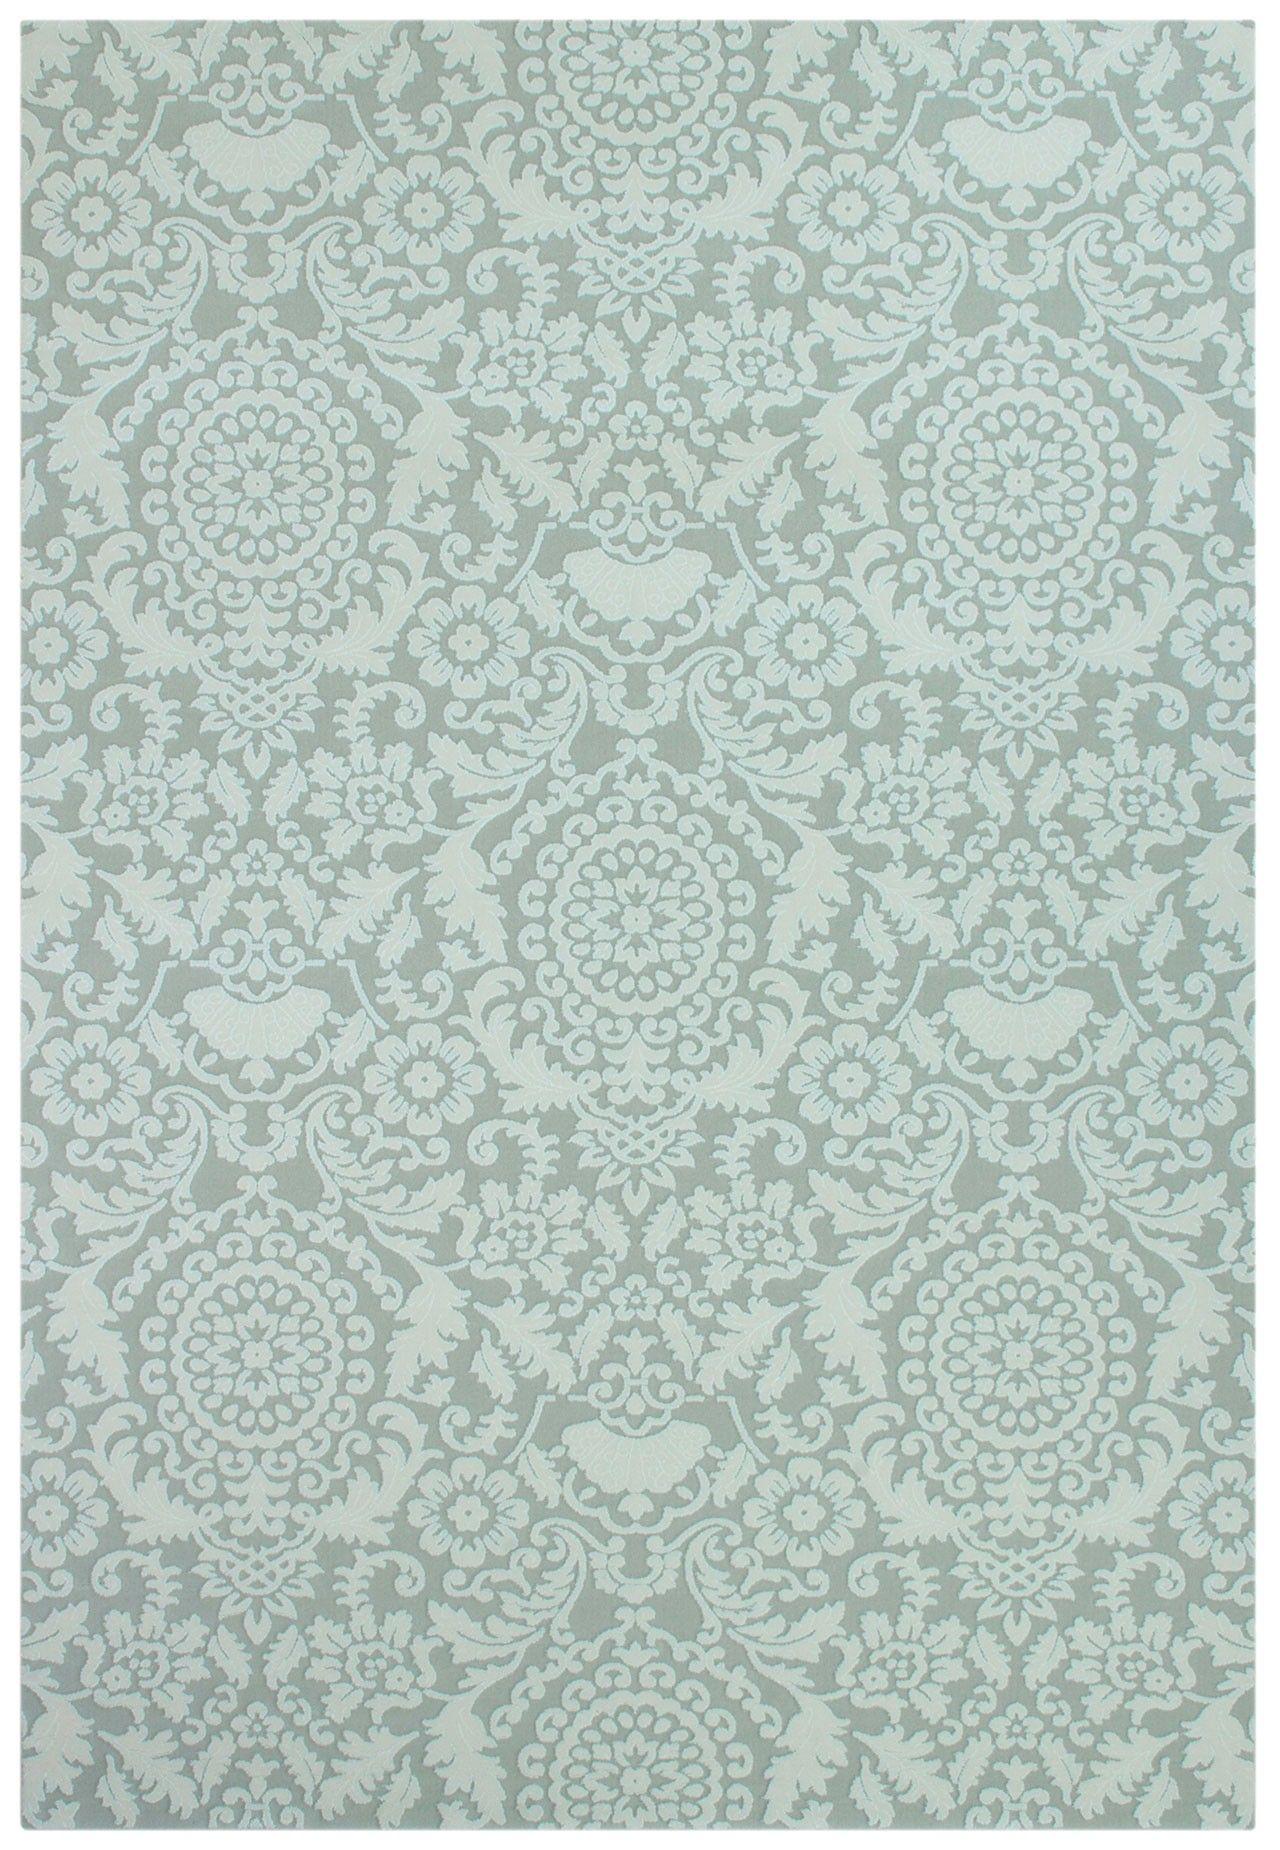 Teppich Blau Ornament Prato 8016 Light Green Teppich Carpet Orient Bordüren Modern Style